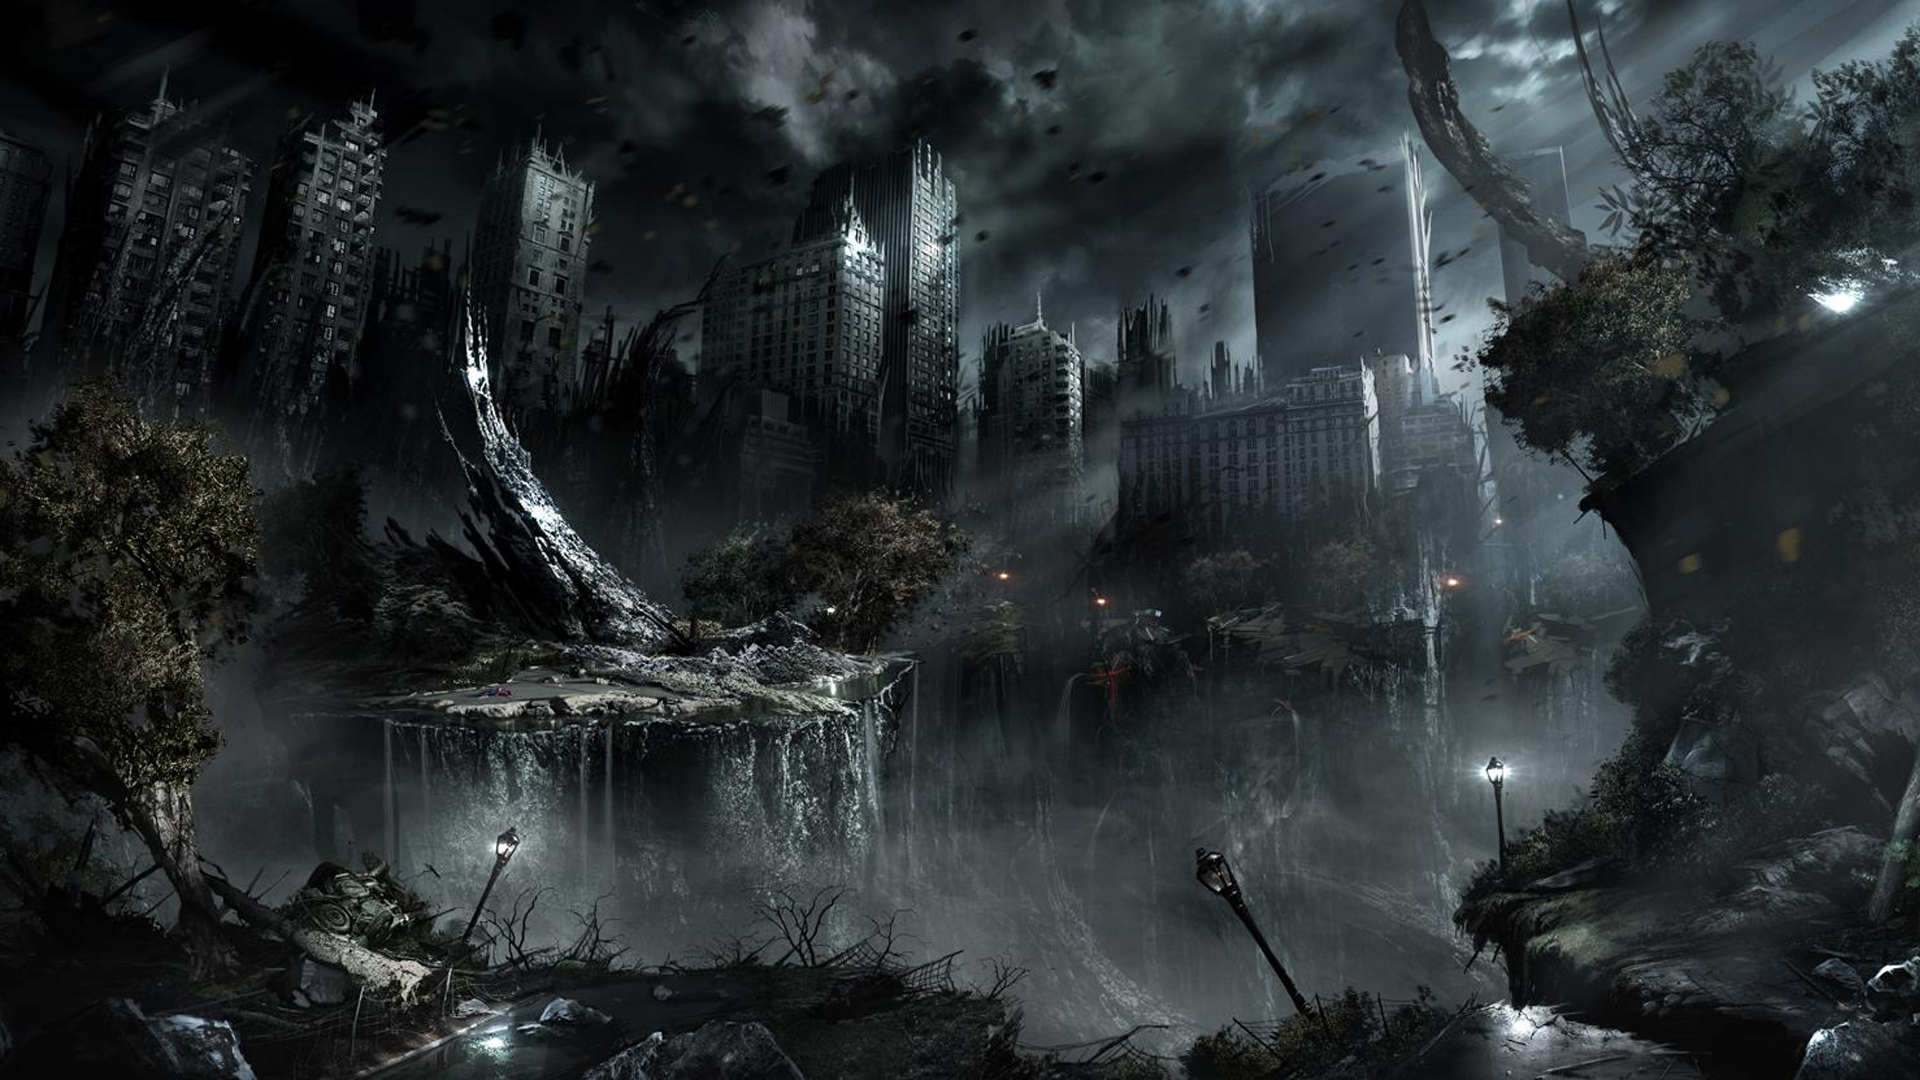 Aftermath Apocalyptic Wallpaper Hd 1481318 Hd